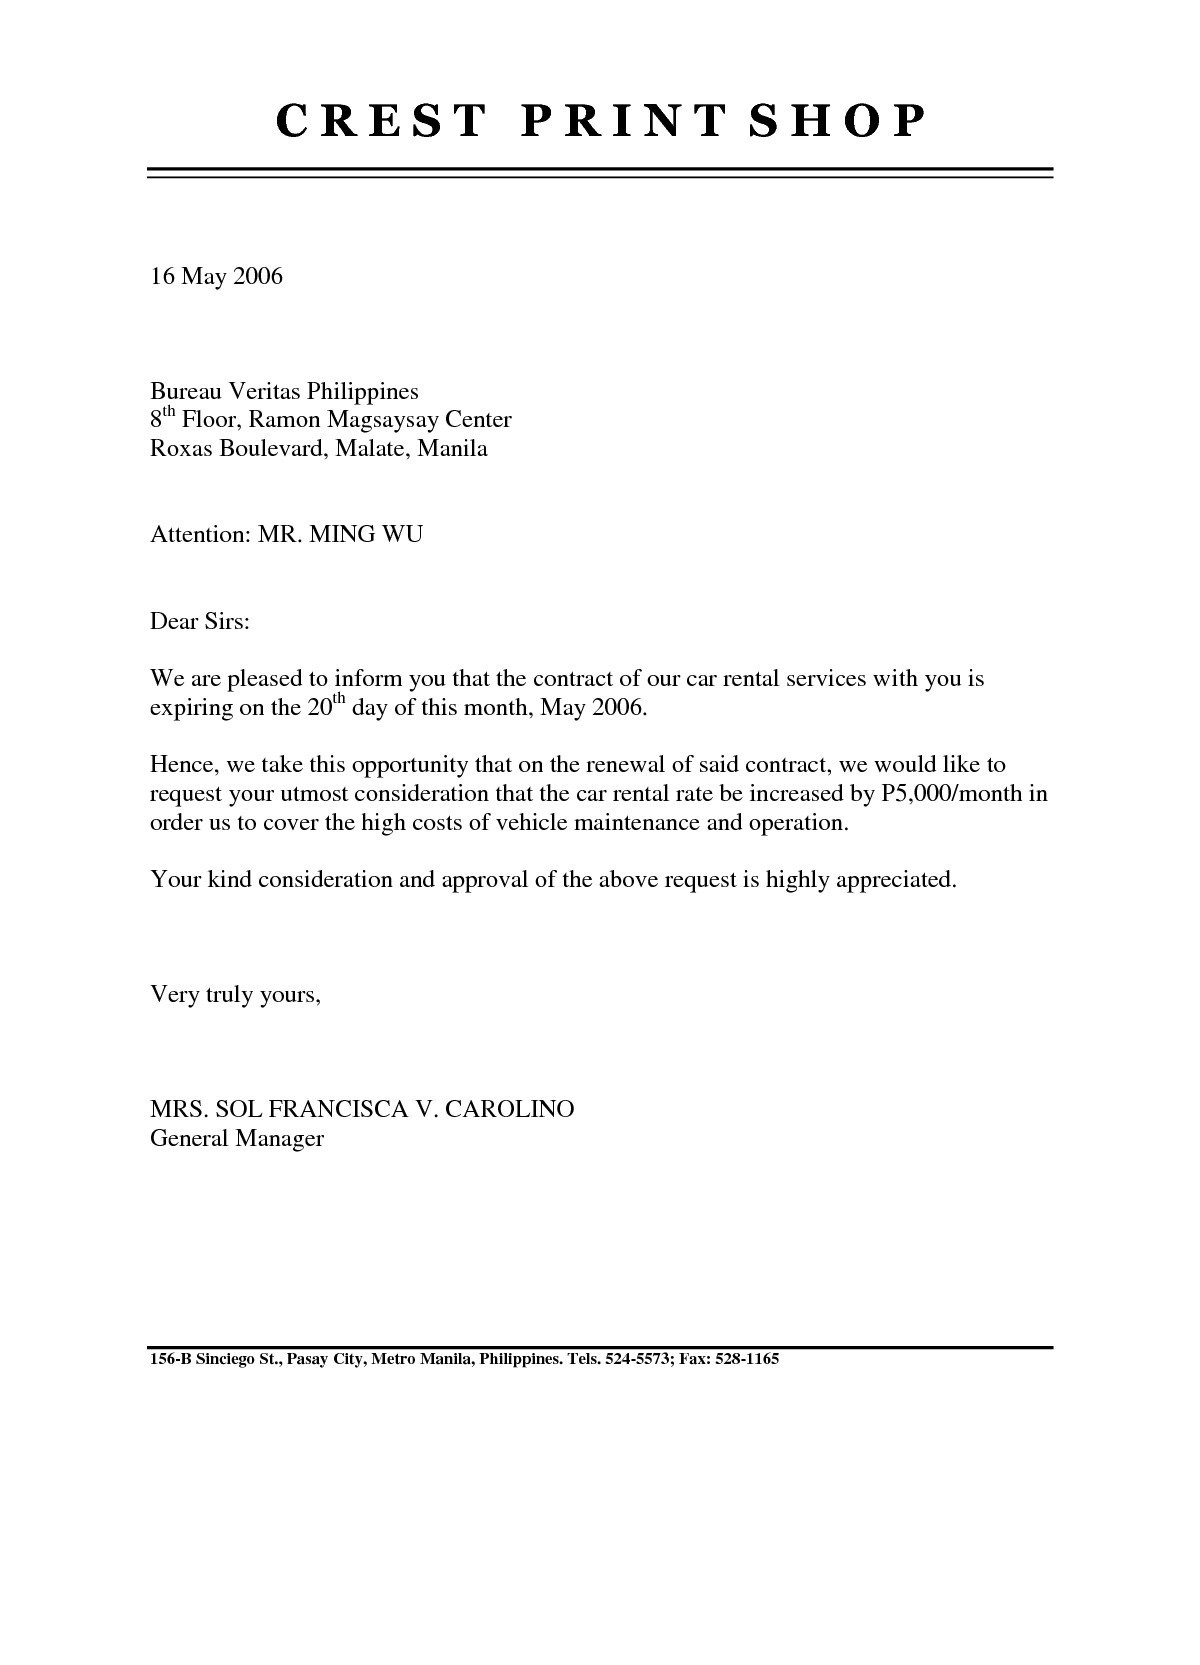 lease extension letter template examples letter cover templates